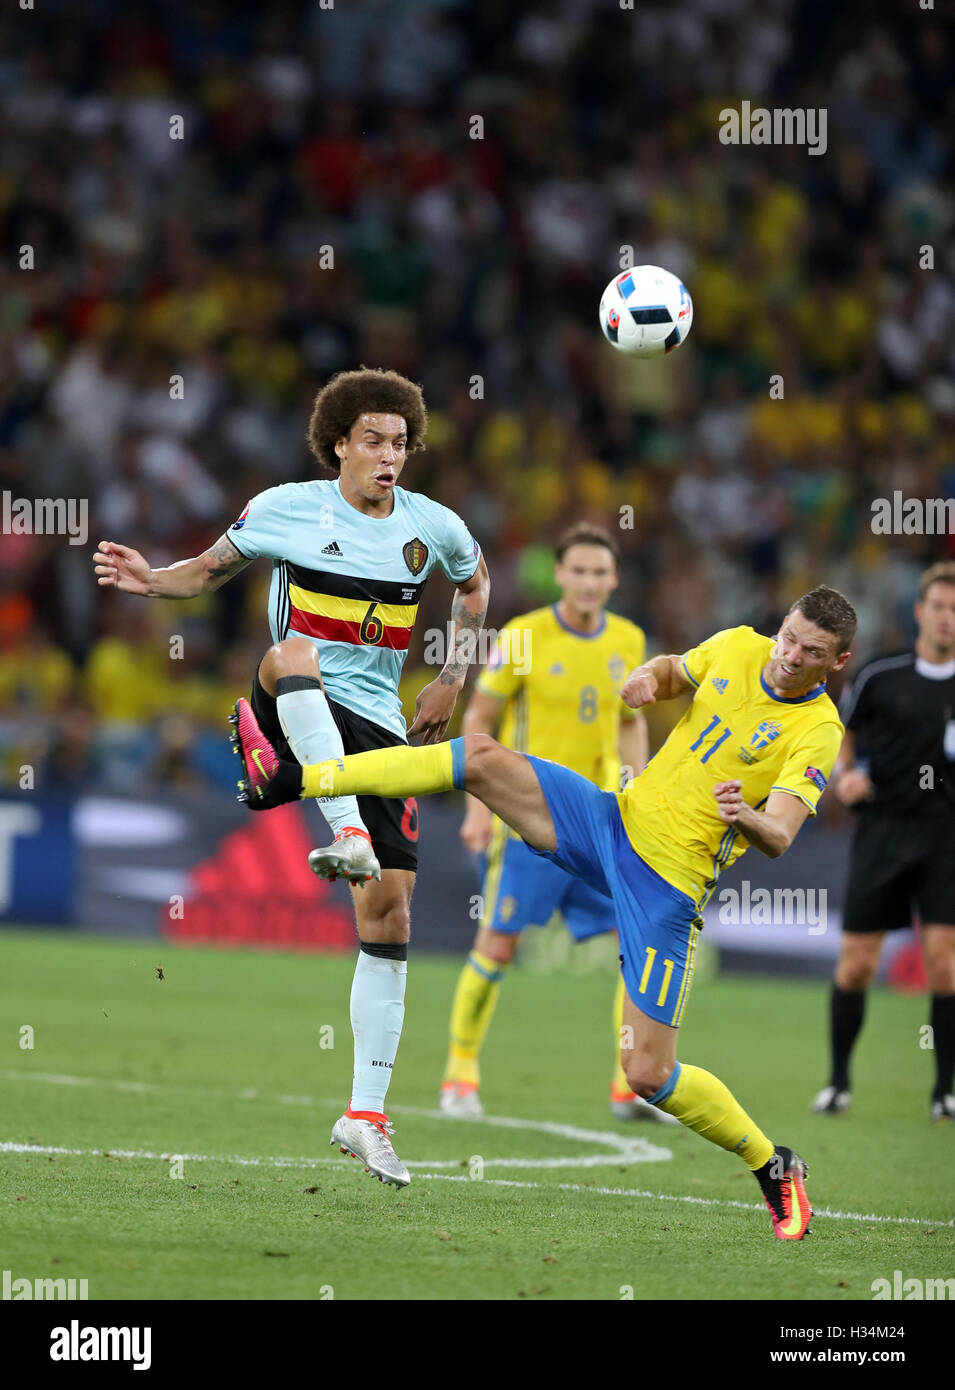 axel witsel stock photos axel witsel stock images page 2 alamy. Black Bedroom Furniture Sets. Home Design Ideas